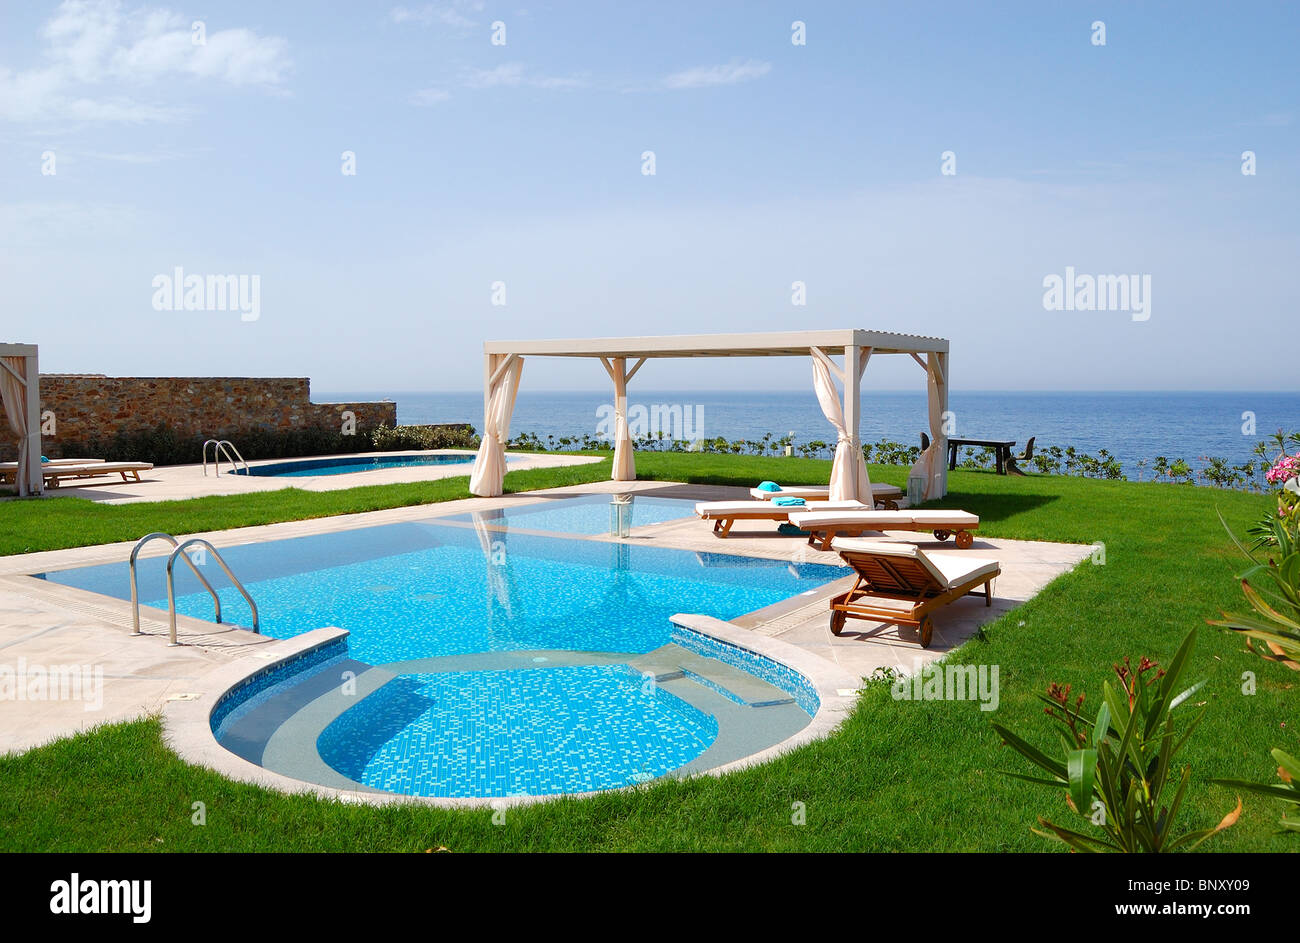 Swimming pool with jacuzzi at the beach of modern luxury villa Stock ...